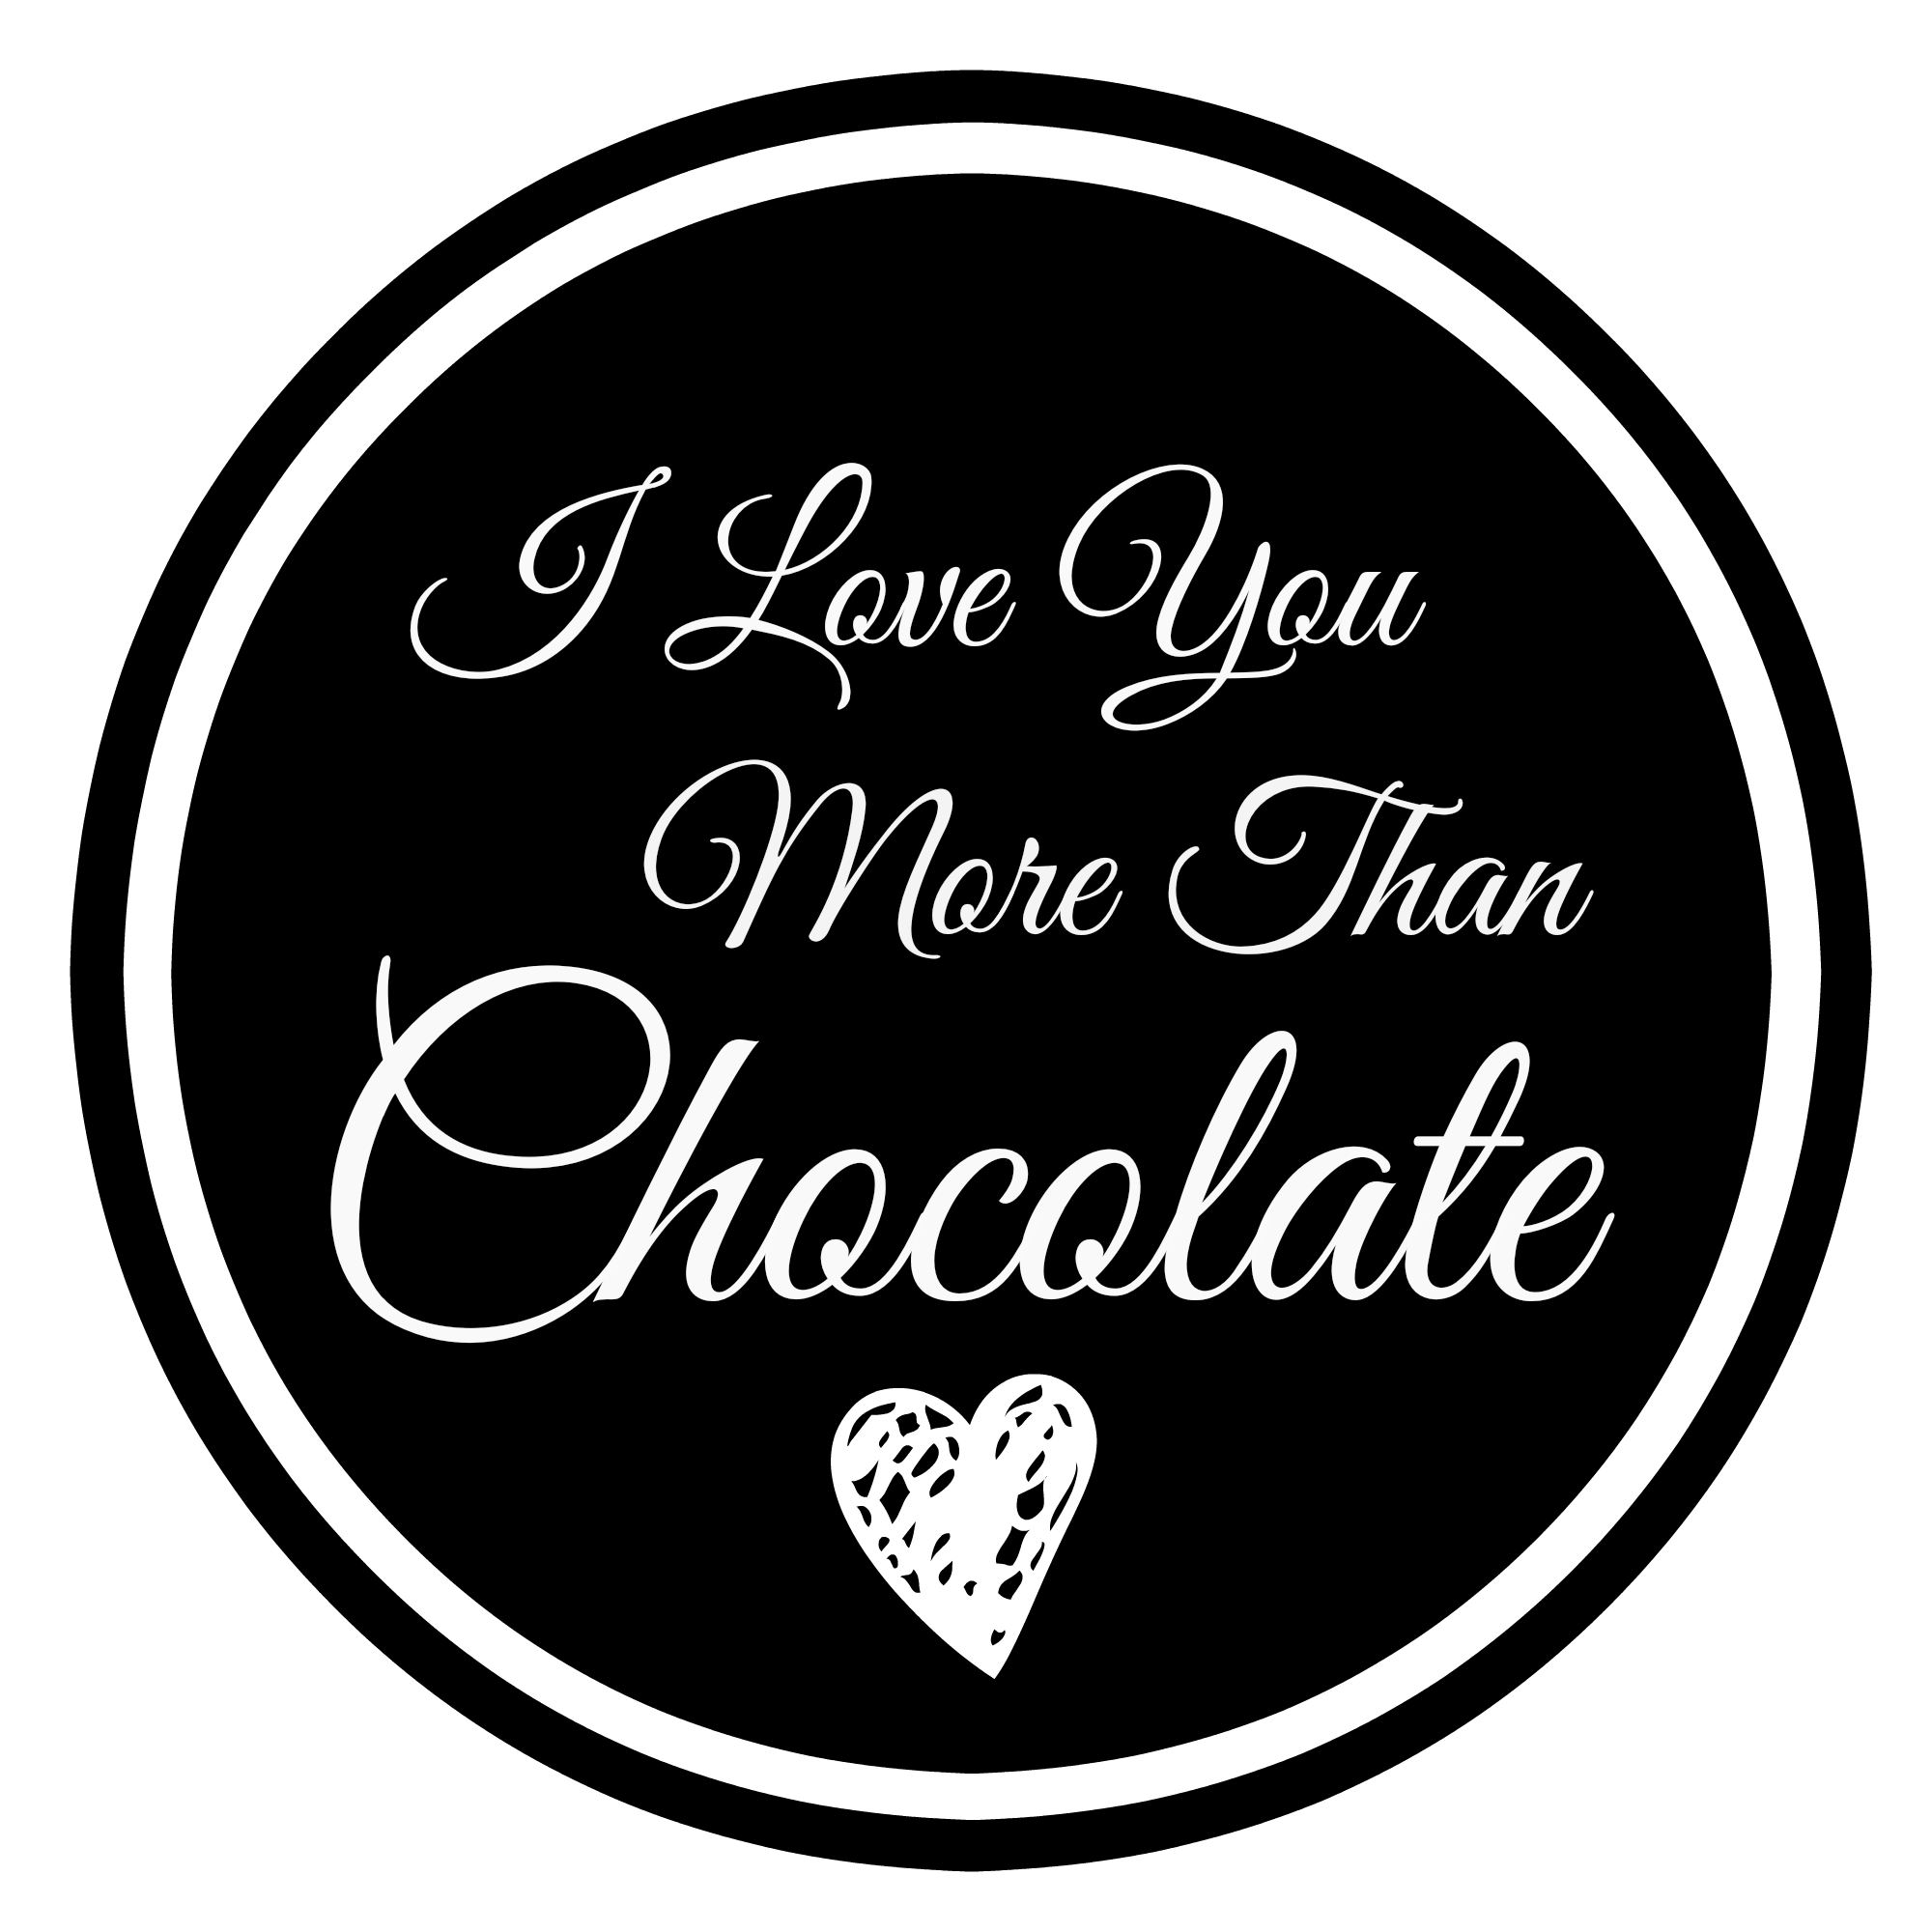 I Love You More Than Quotes: I Love You More Than Chocolate Gift Idea & Tag